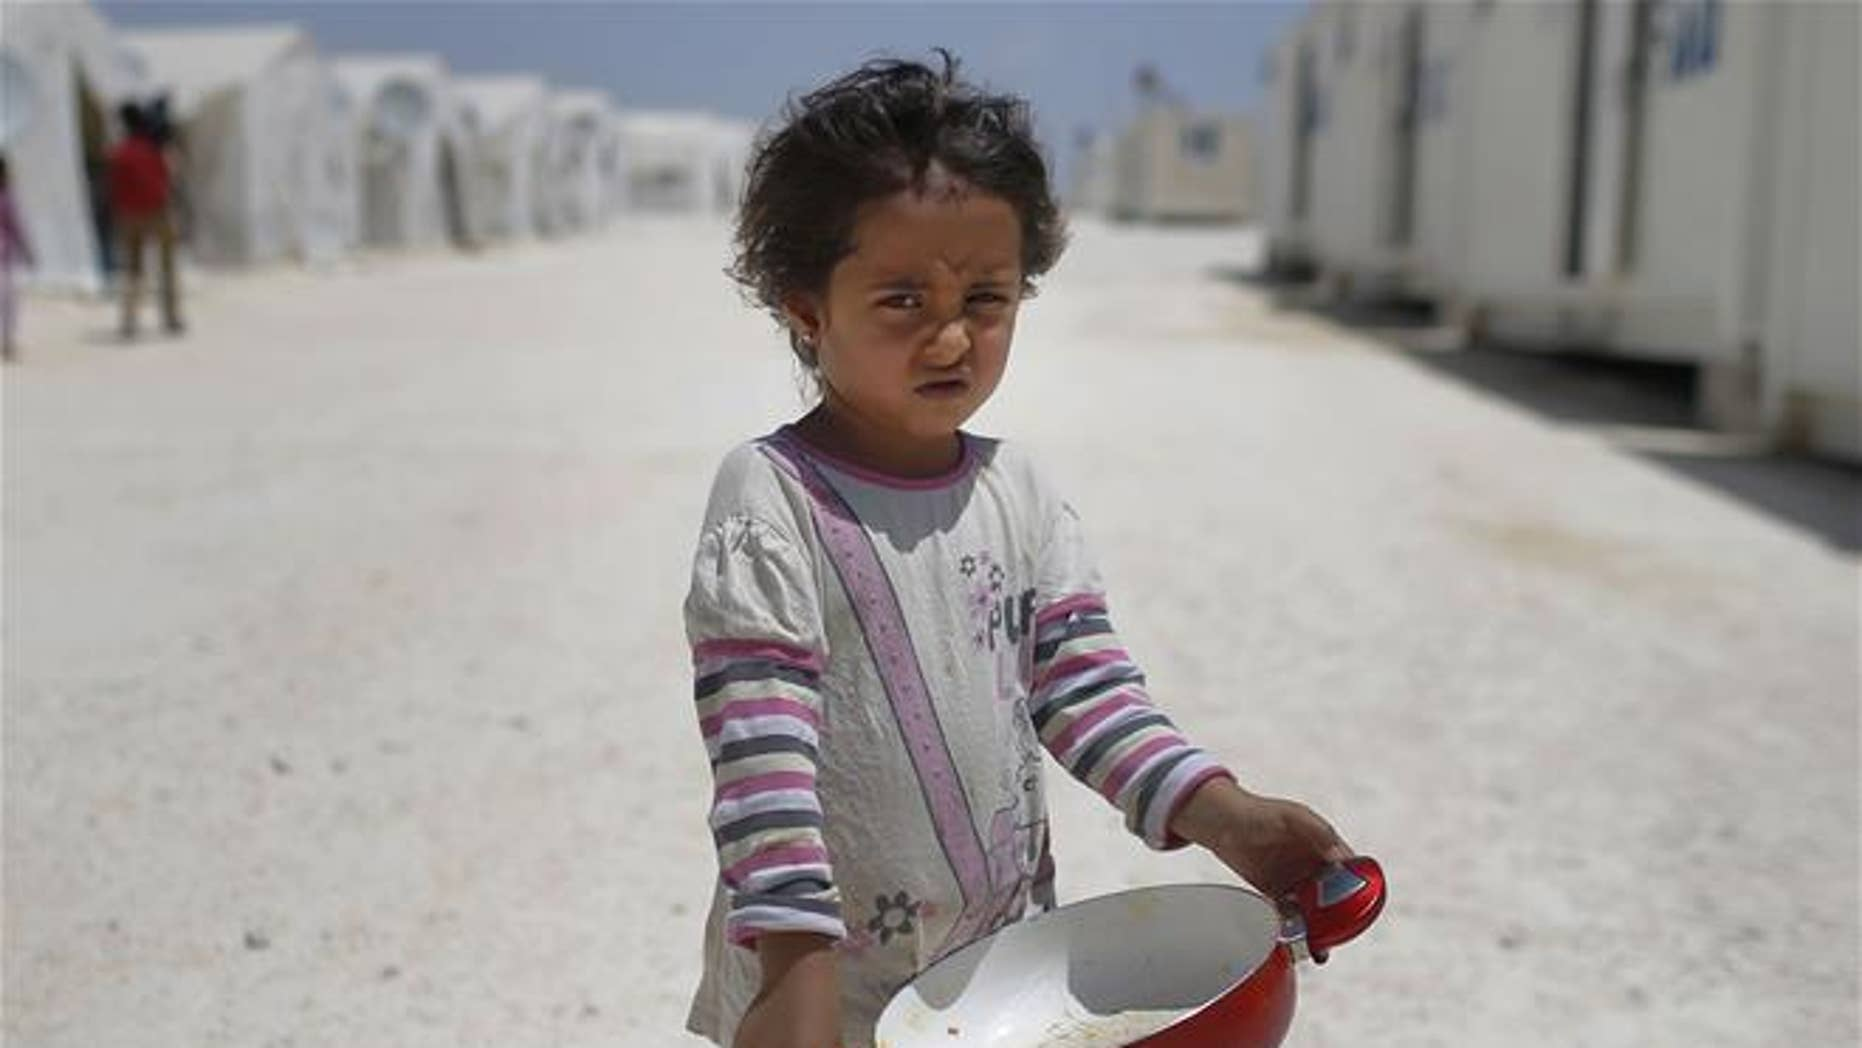 A Syrian refugee child is shown.